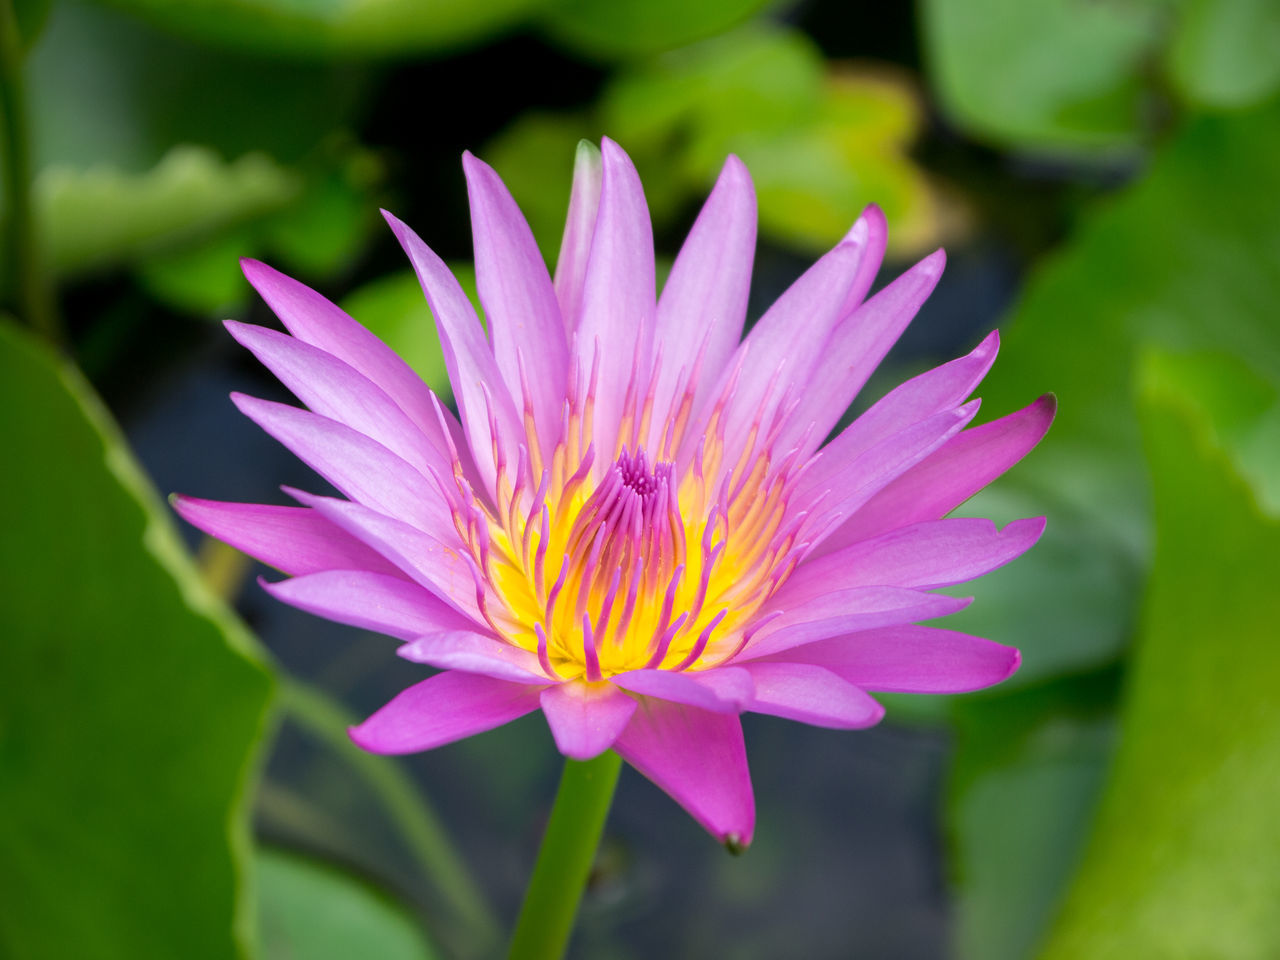 Blooming Purple Lotus in Pond Beauty In Nature Blooming Close-up Day Flower Flower Head Fragility Freshness Growth Lotus Lotus Water Lily Love Nature No People Outdoors Petal Plant